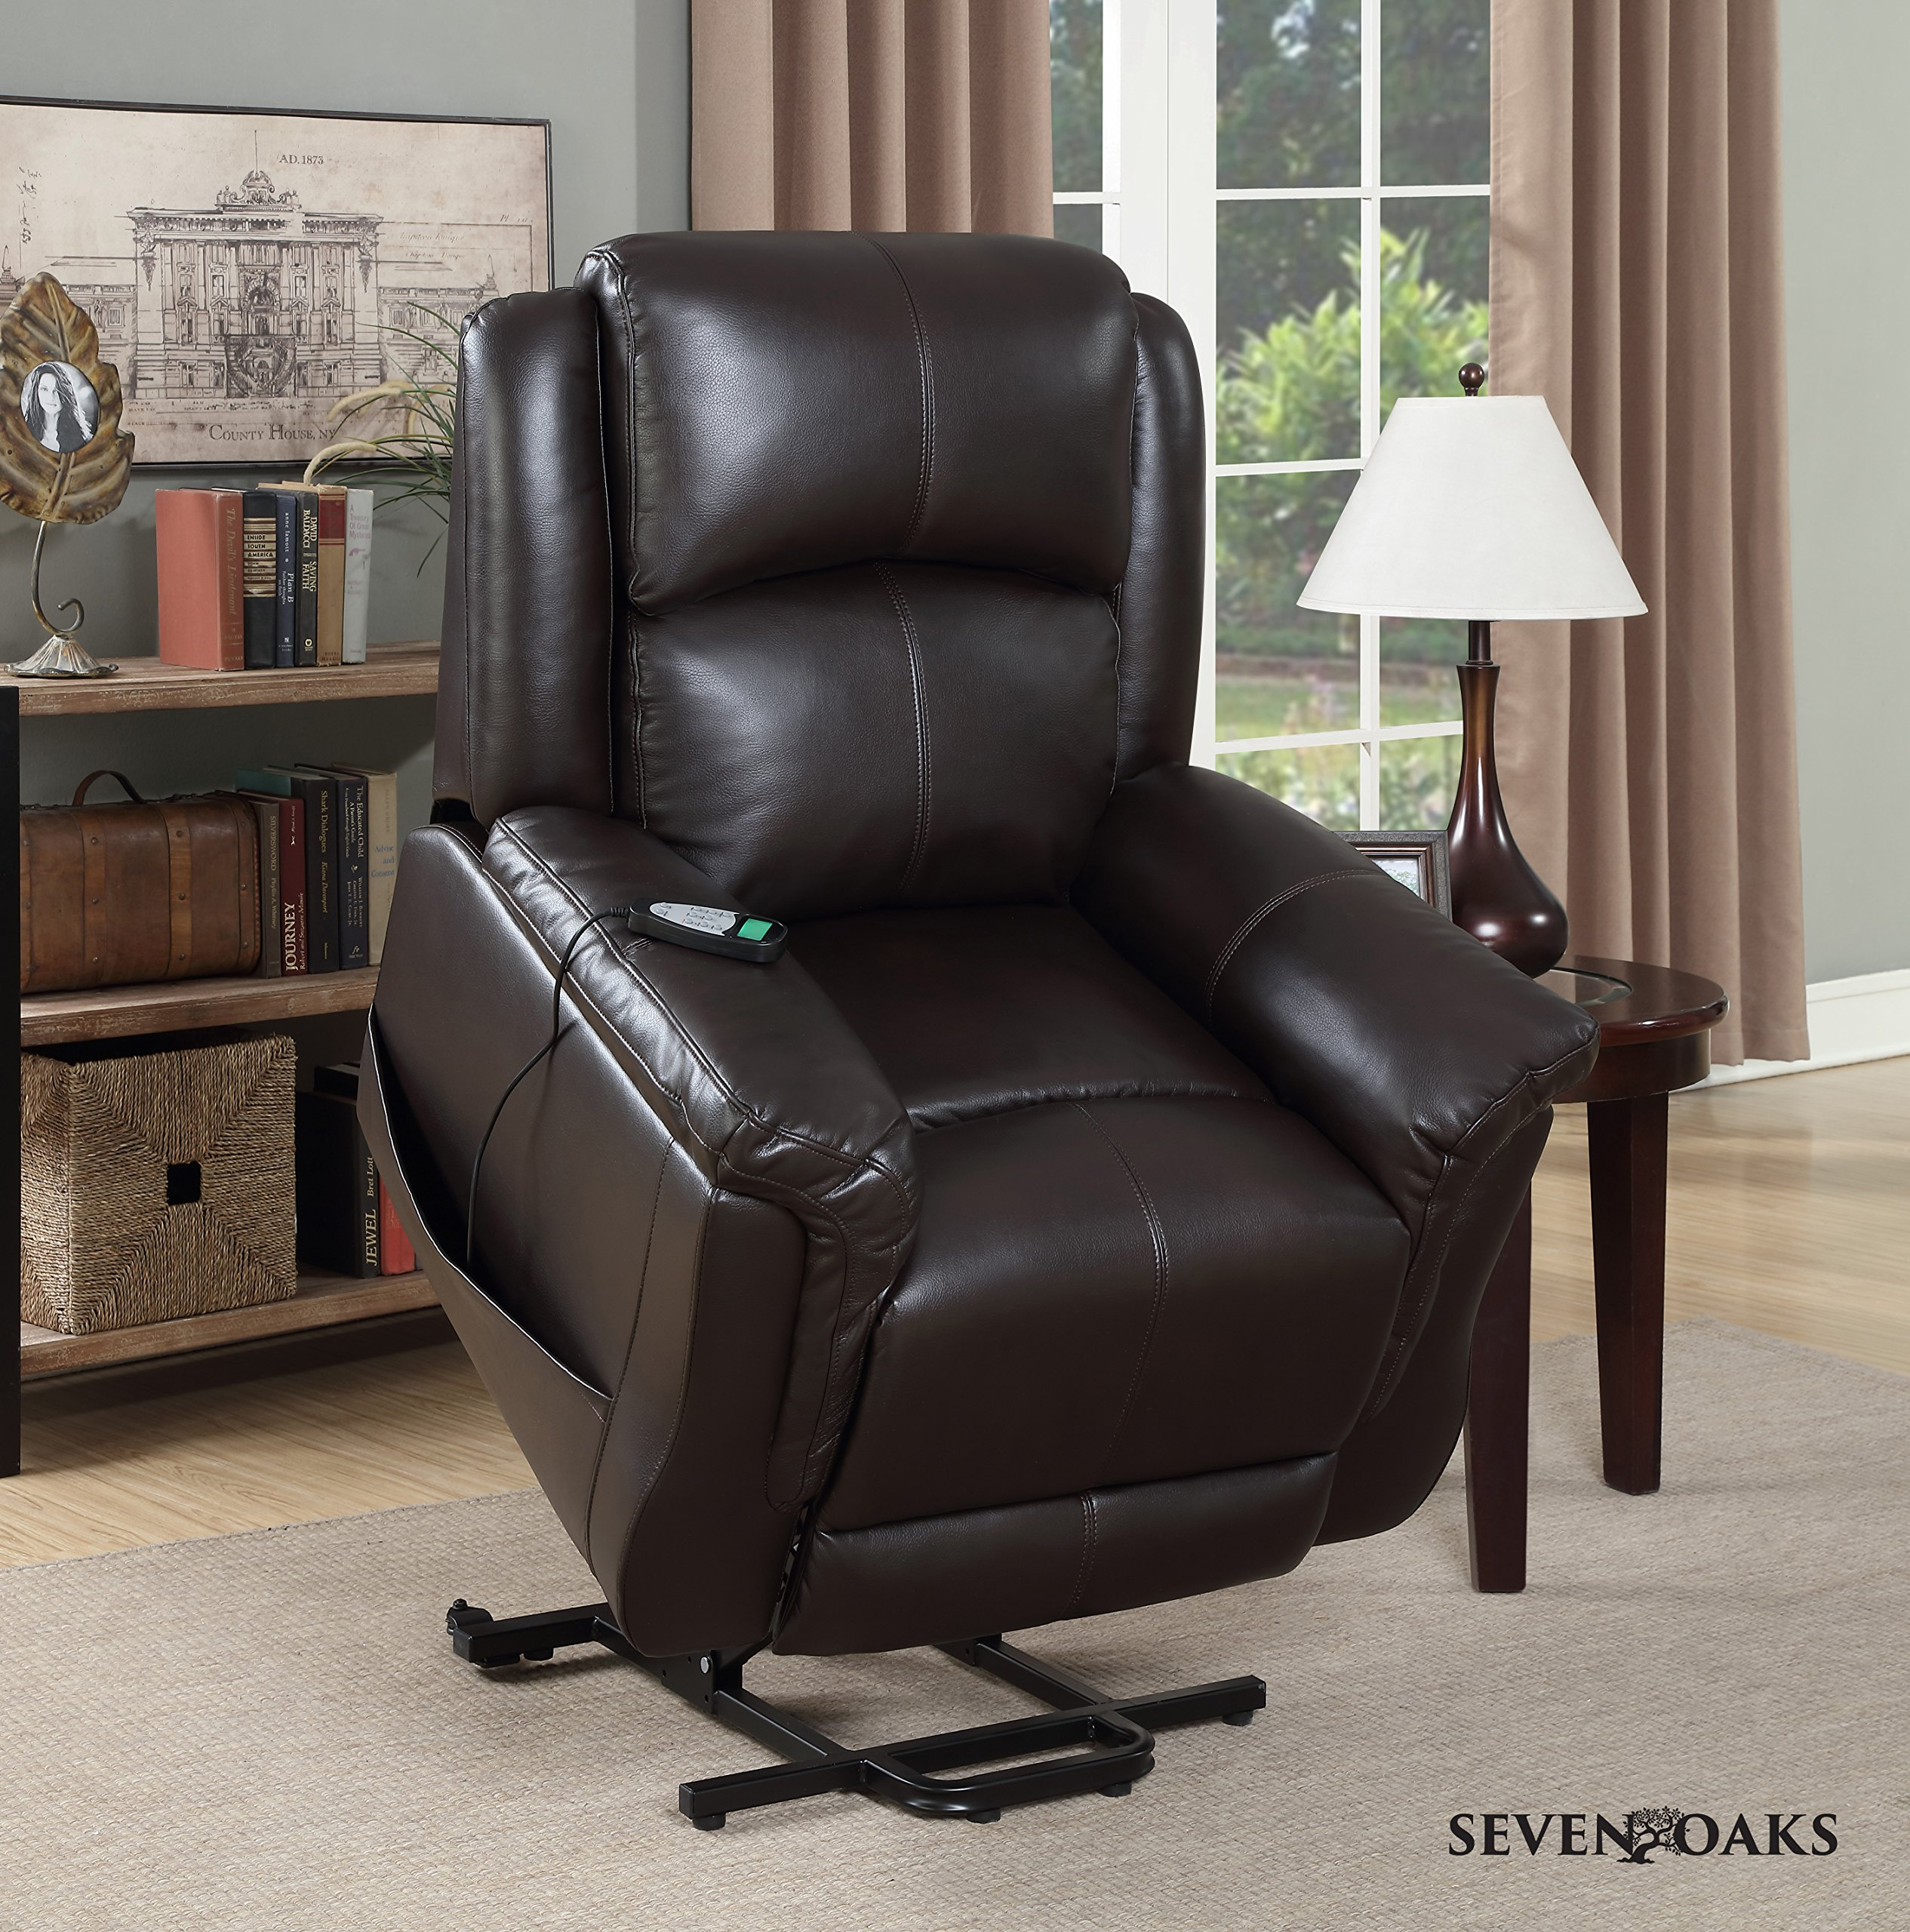 Seven Oaks Power Lift Recliner for Seniors   Electric Chair for the Elderly with Heated Massage   Adjustable Controls & Full Range of Motion   Soft Bonded Leather   (Model # PETITEBRNLEATHMOD)